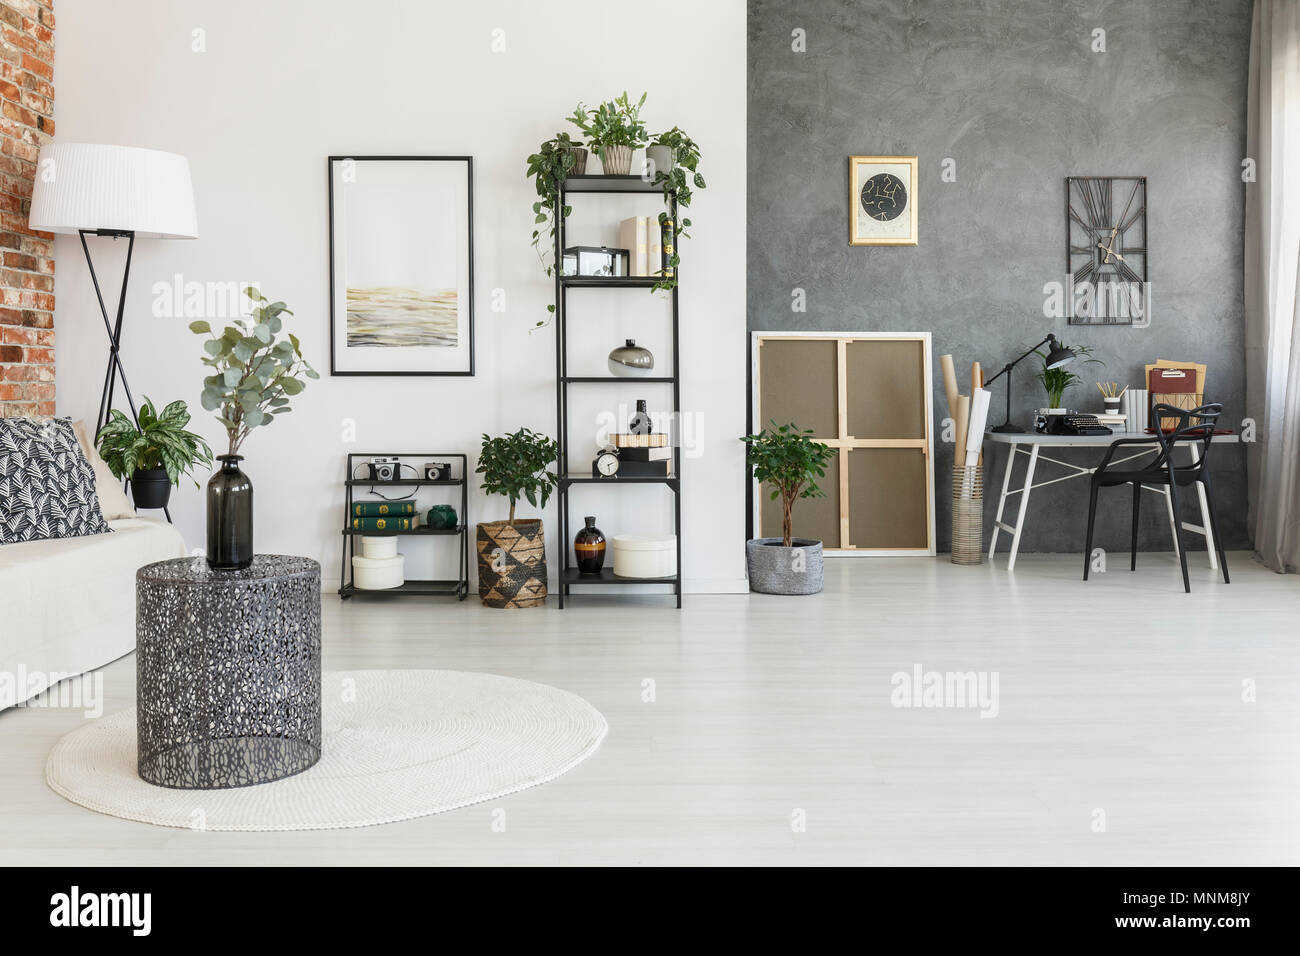 Vase on metal table in open space living room with workspace, plants and contrast colors walls - Stock Image